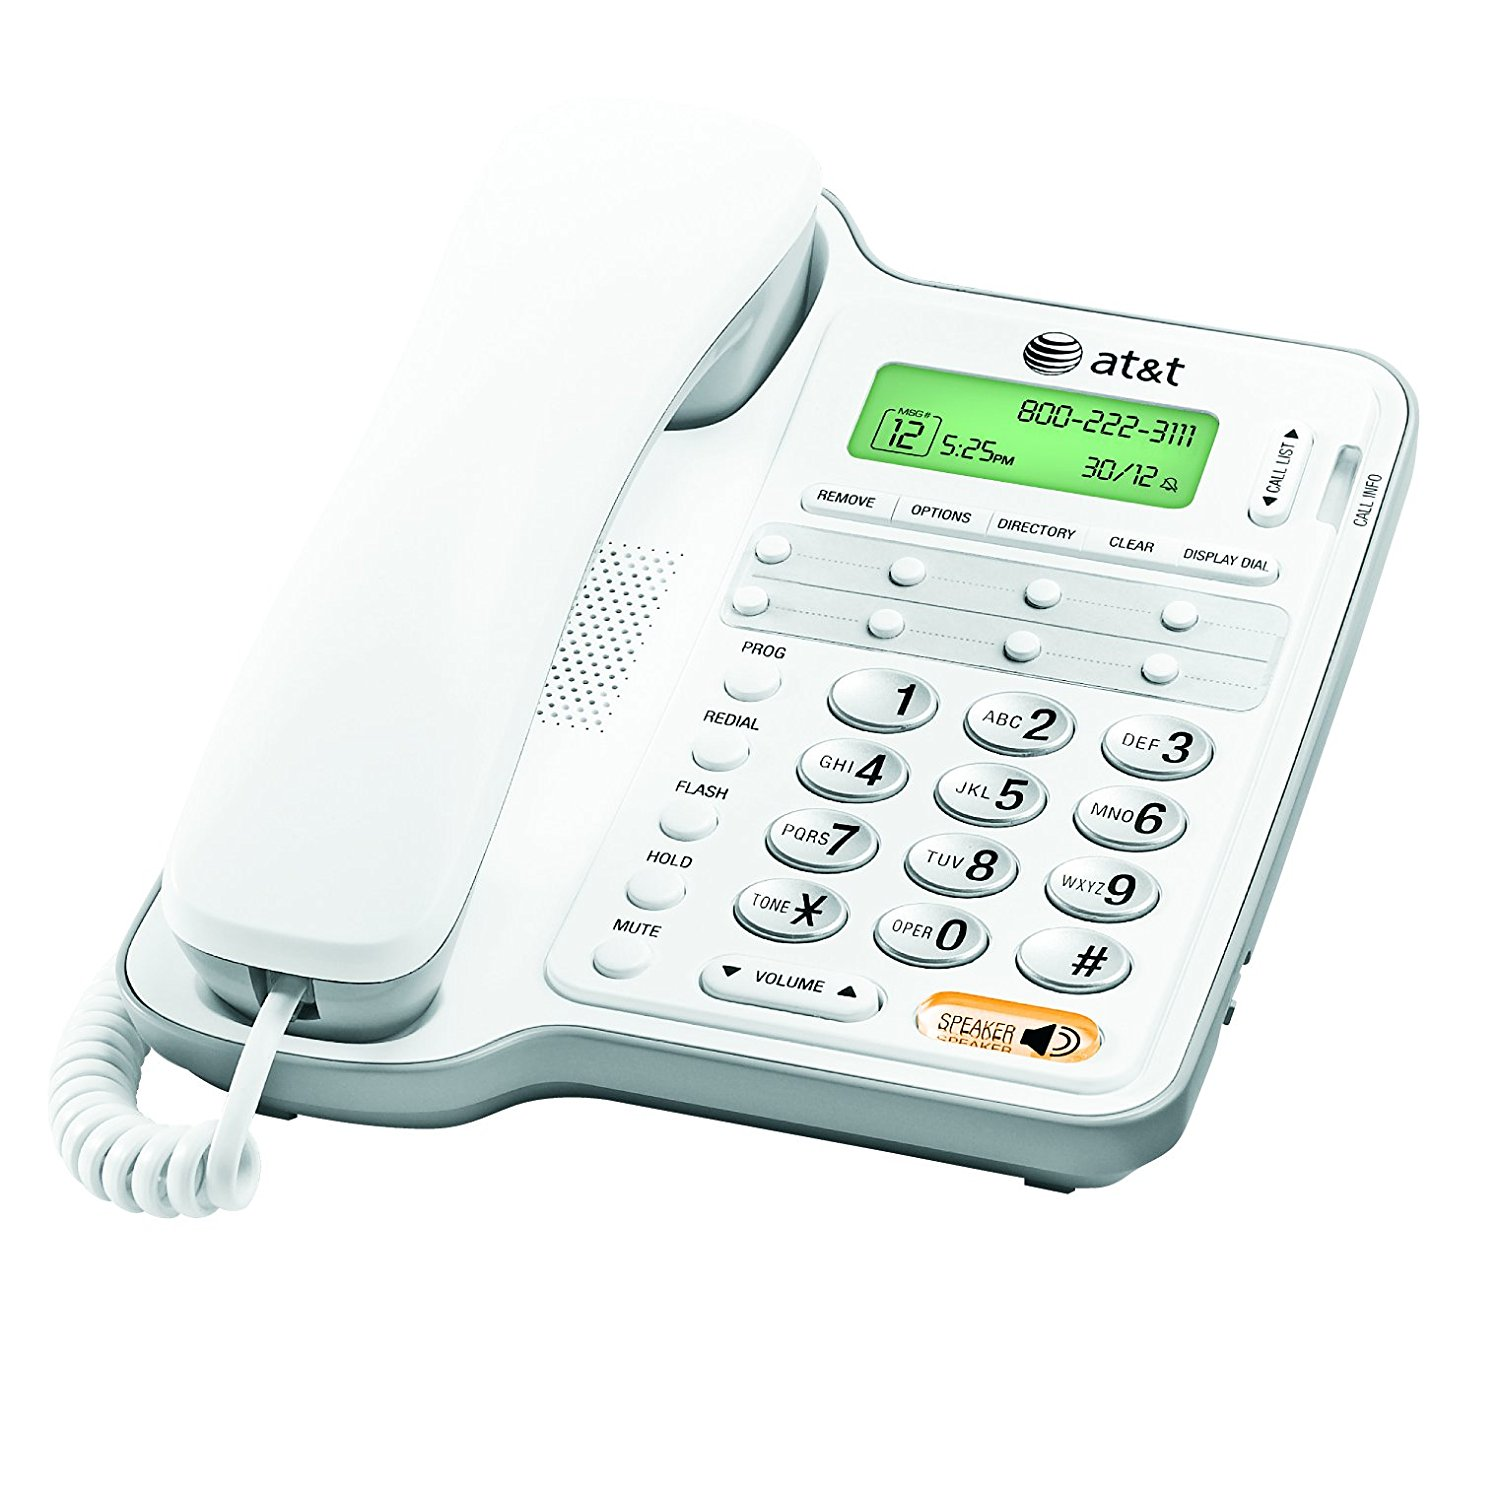 CL2909 Corded Phone with Speakerphone and Caller ID/Call ...